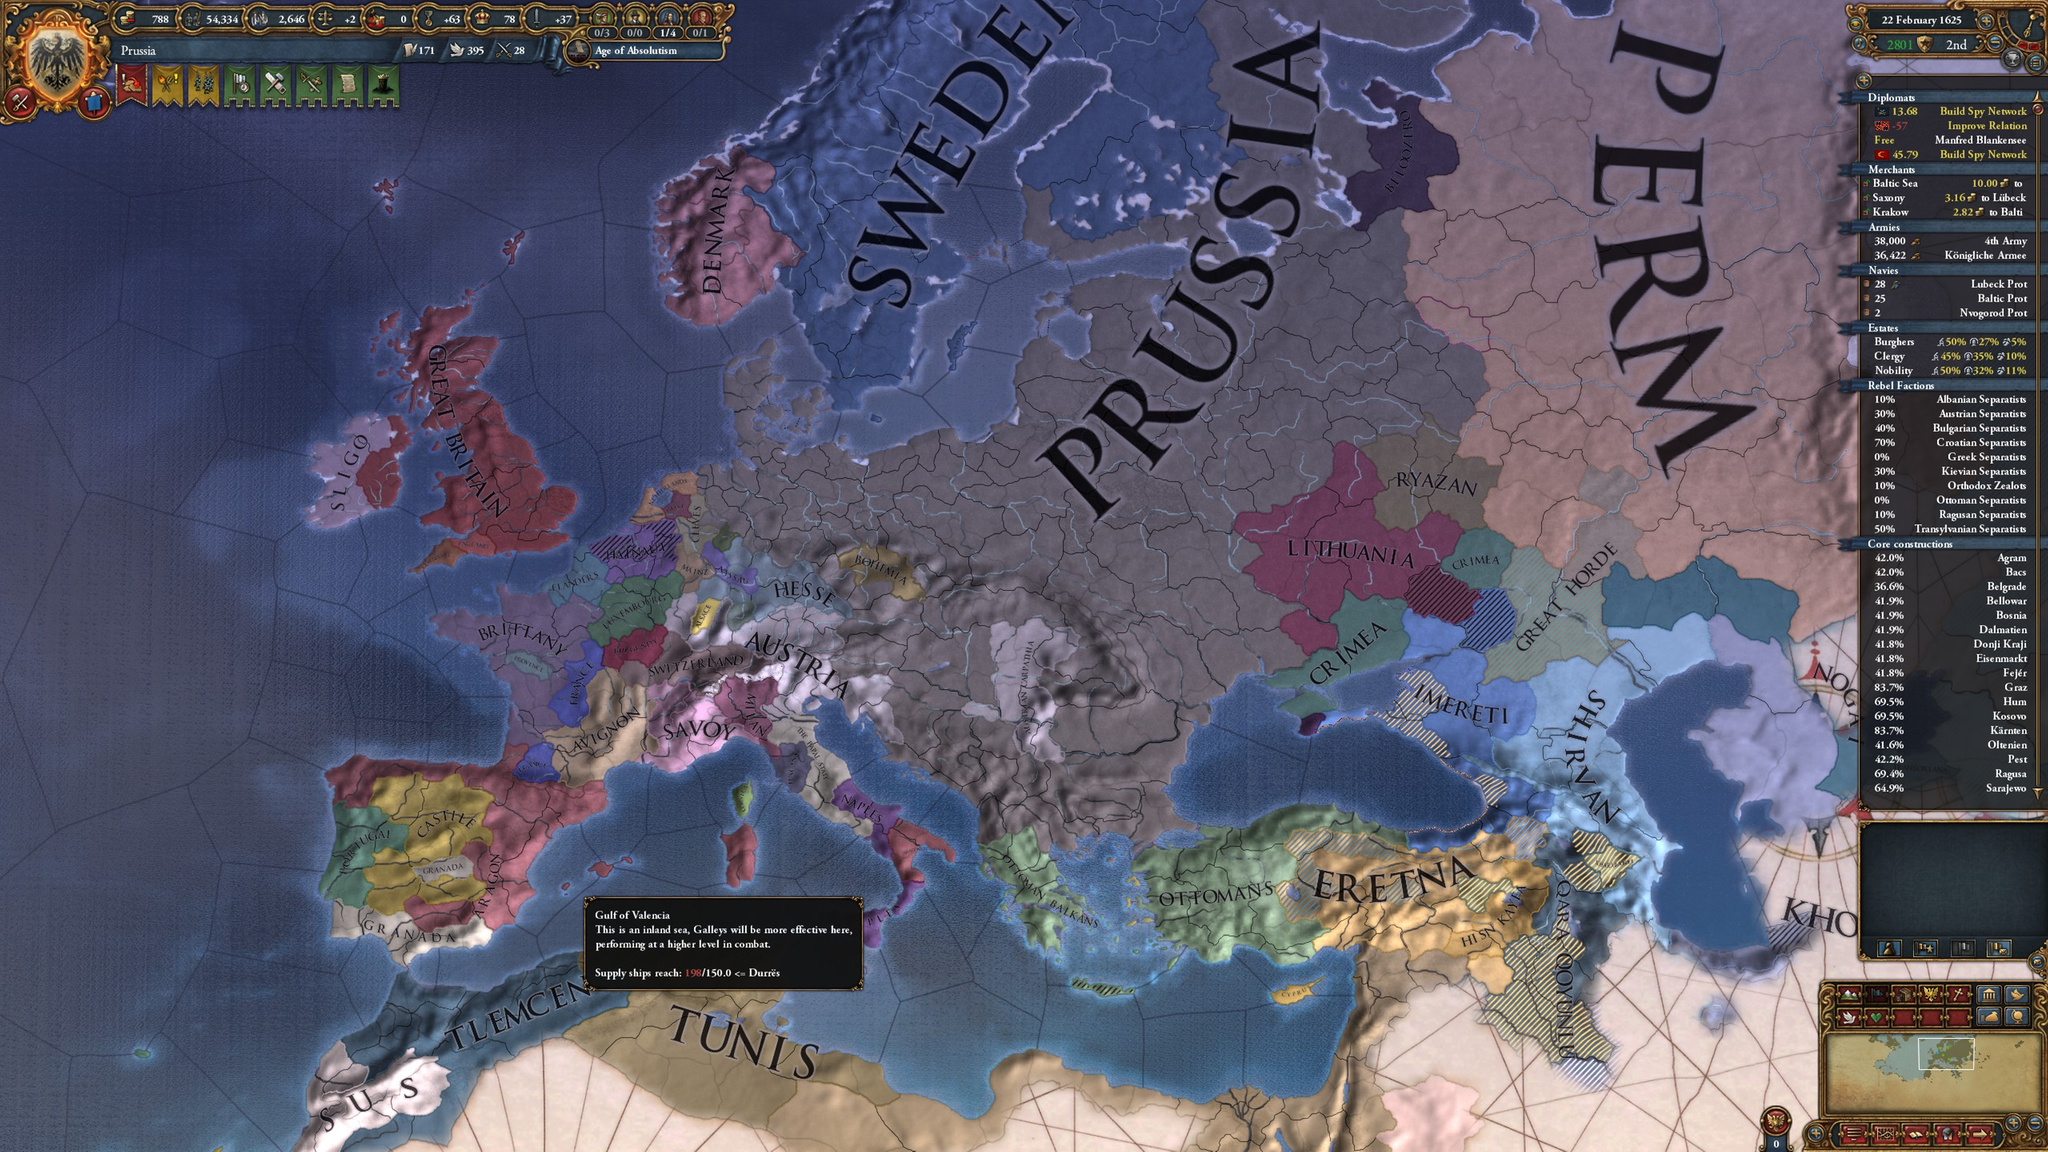 Europa Universalis 4 - Games - Quarter To Three Forums